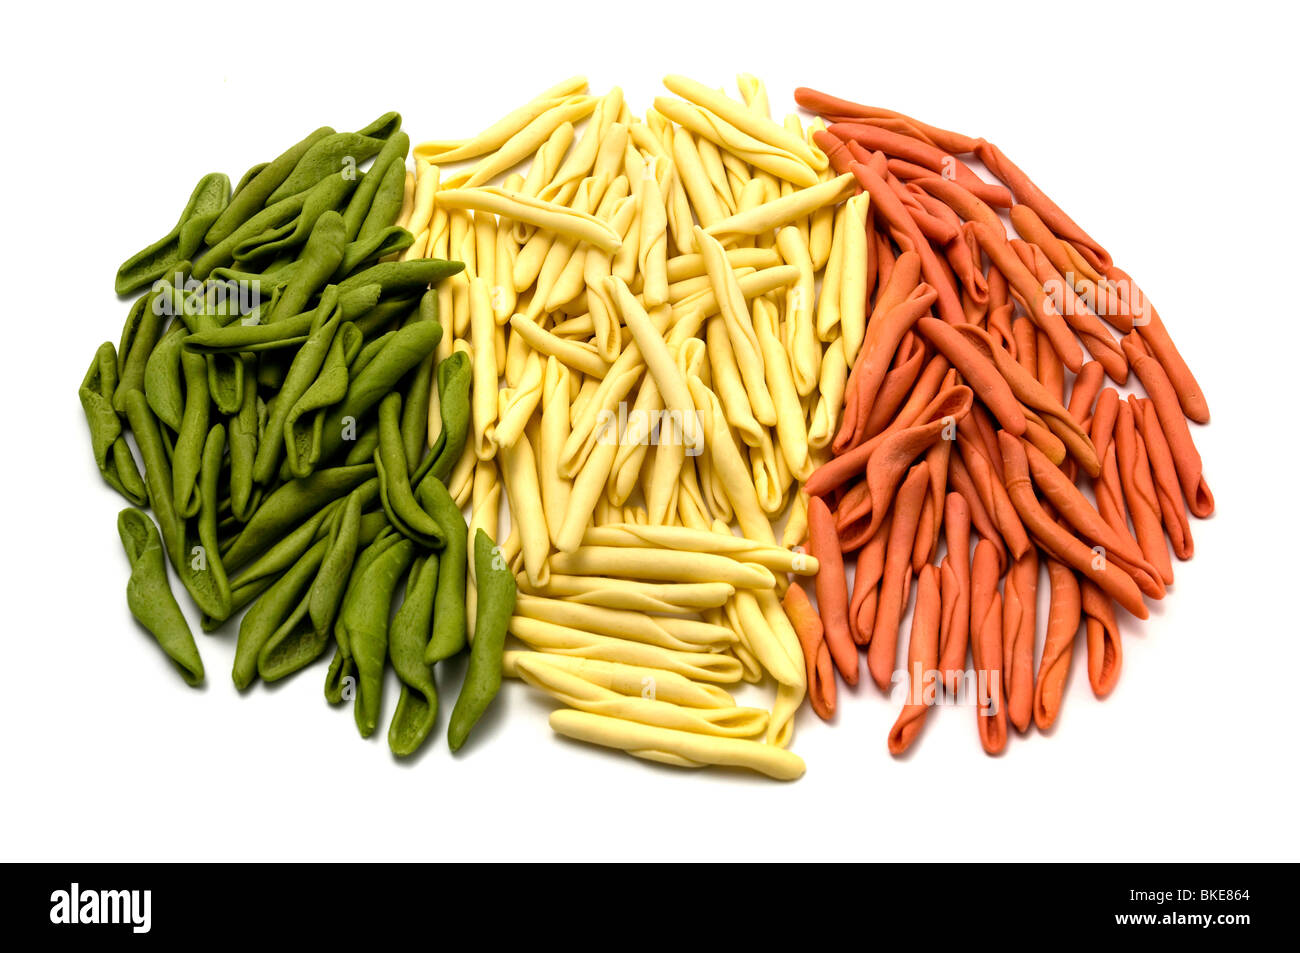 Mixed pasta with the colors of the Italian flag on a white background - Stock Image